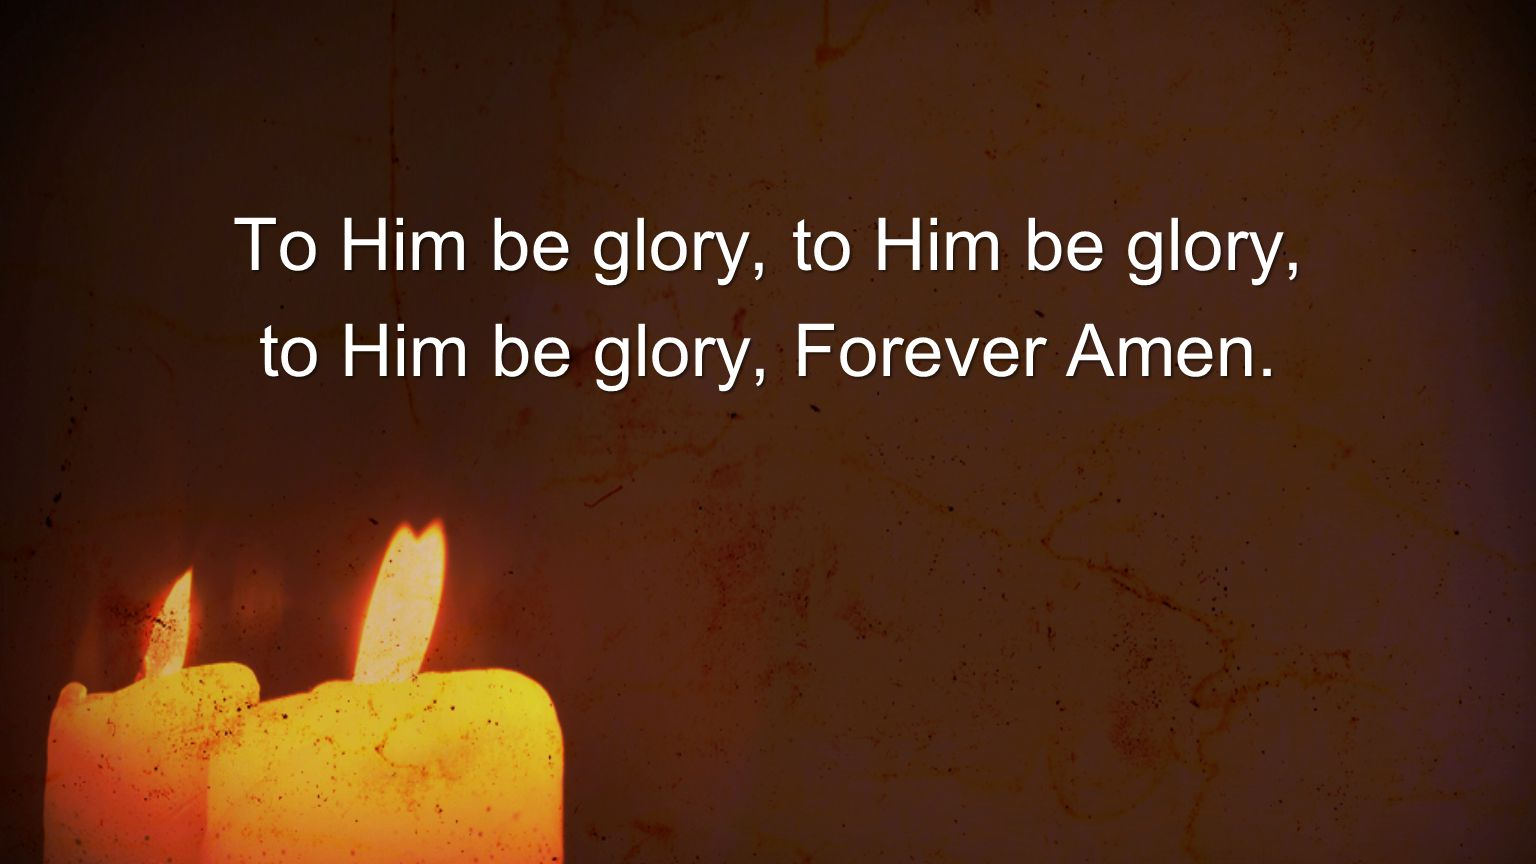 To Him be glory, to Him be glory, to Him be glory, Forever Amen.